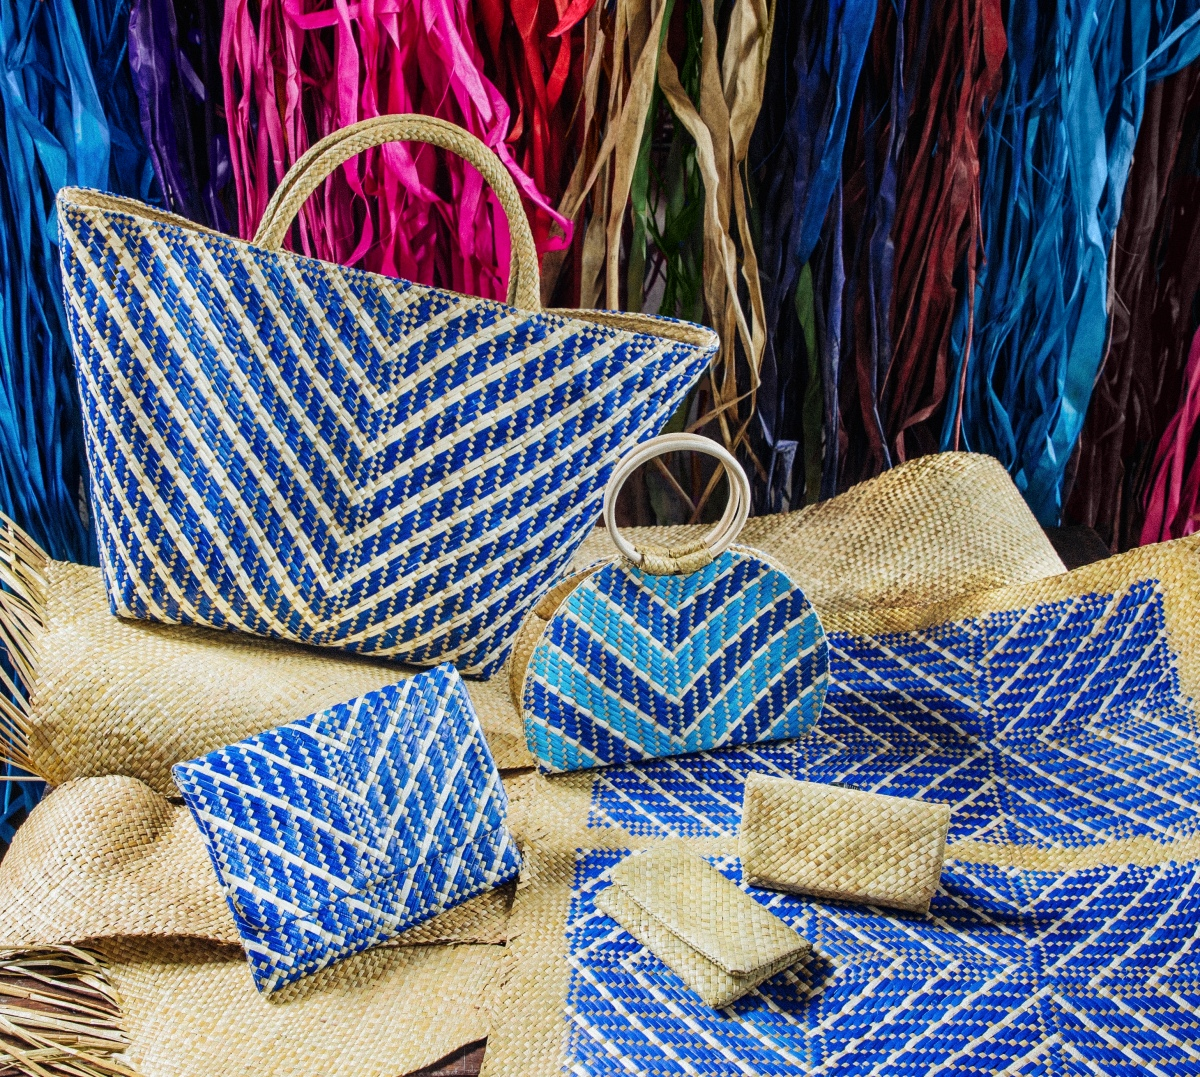 Charles & Keith partners with local brand Woven to benefit local